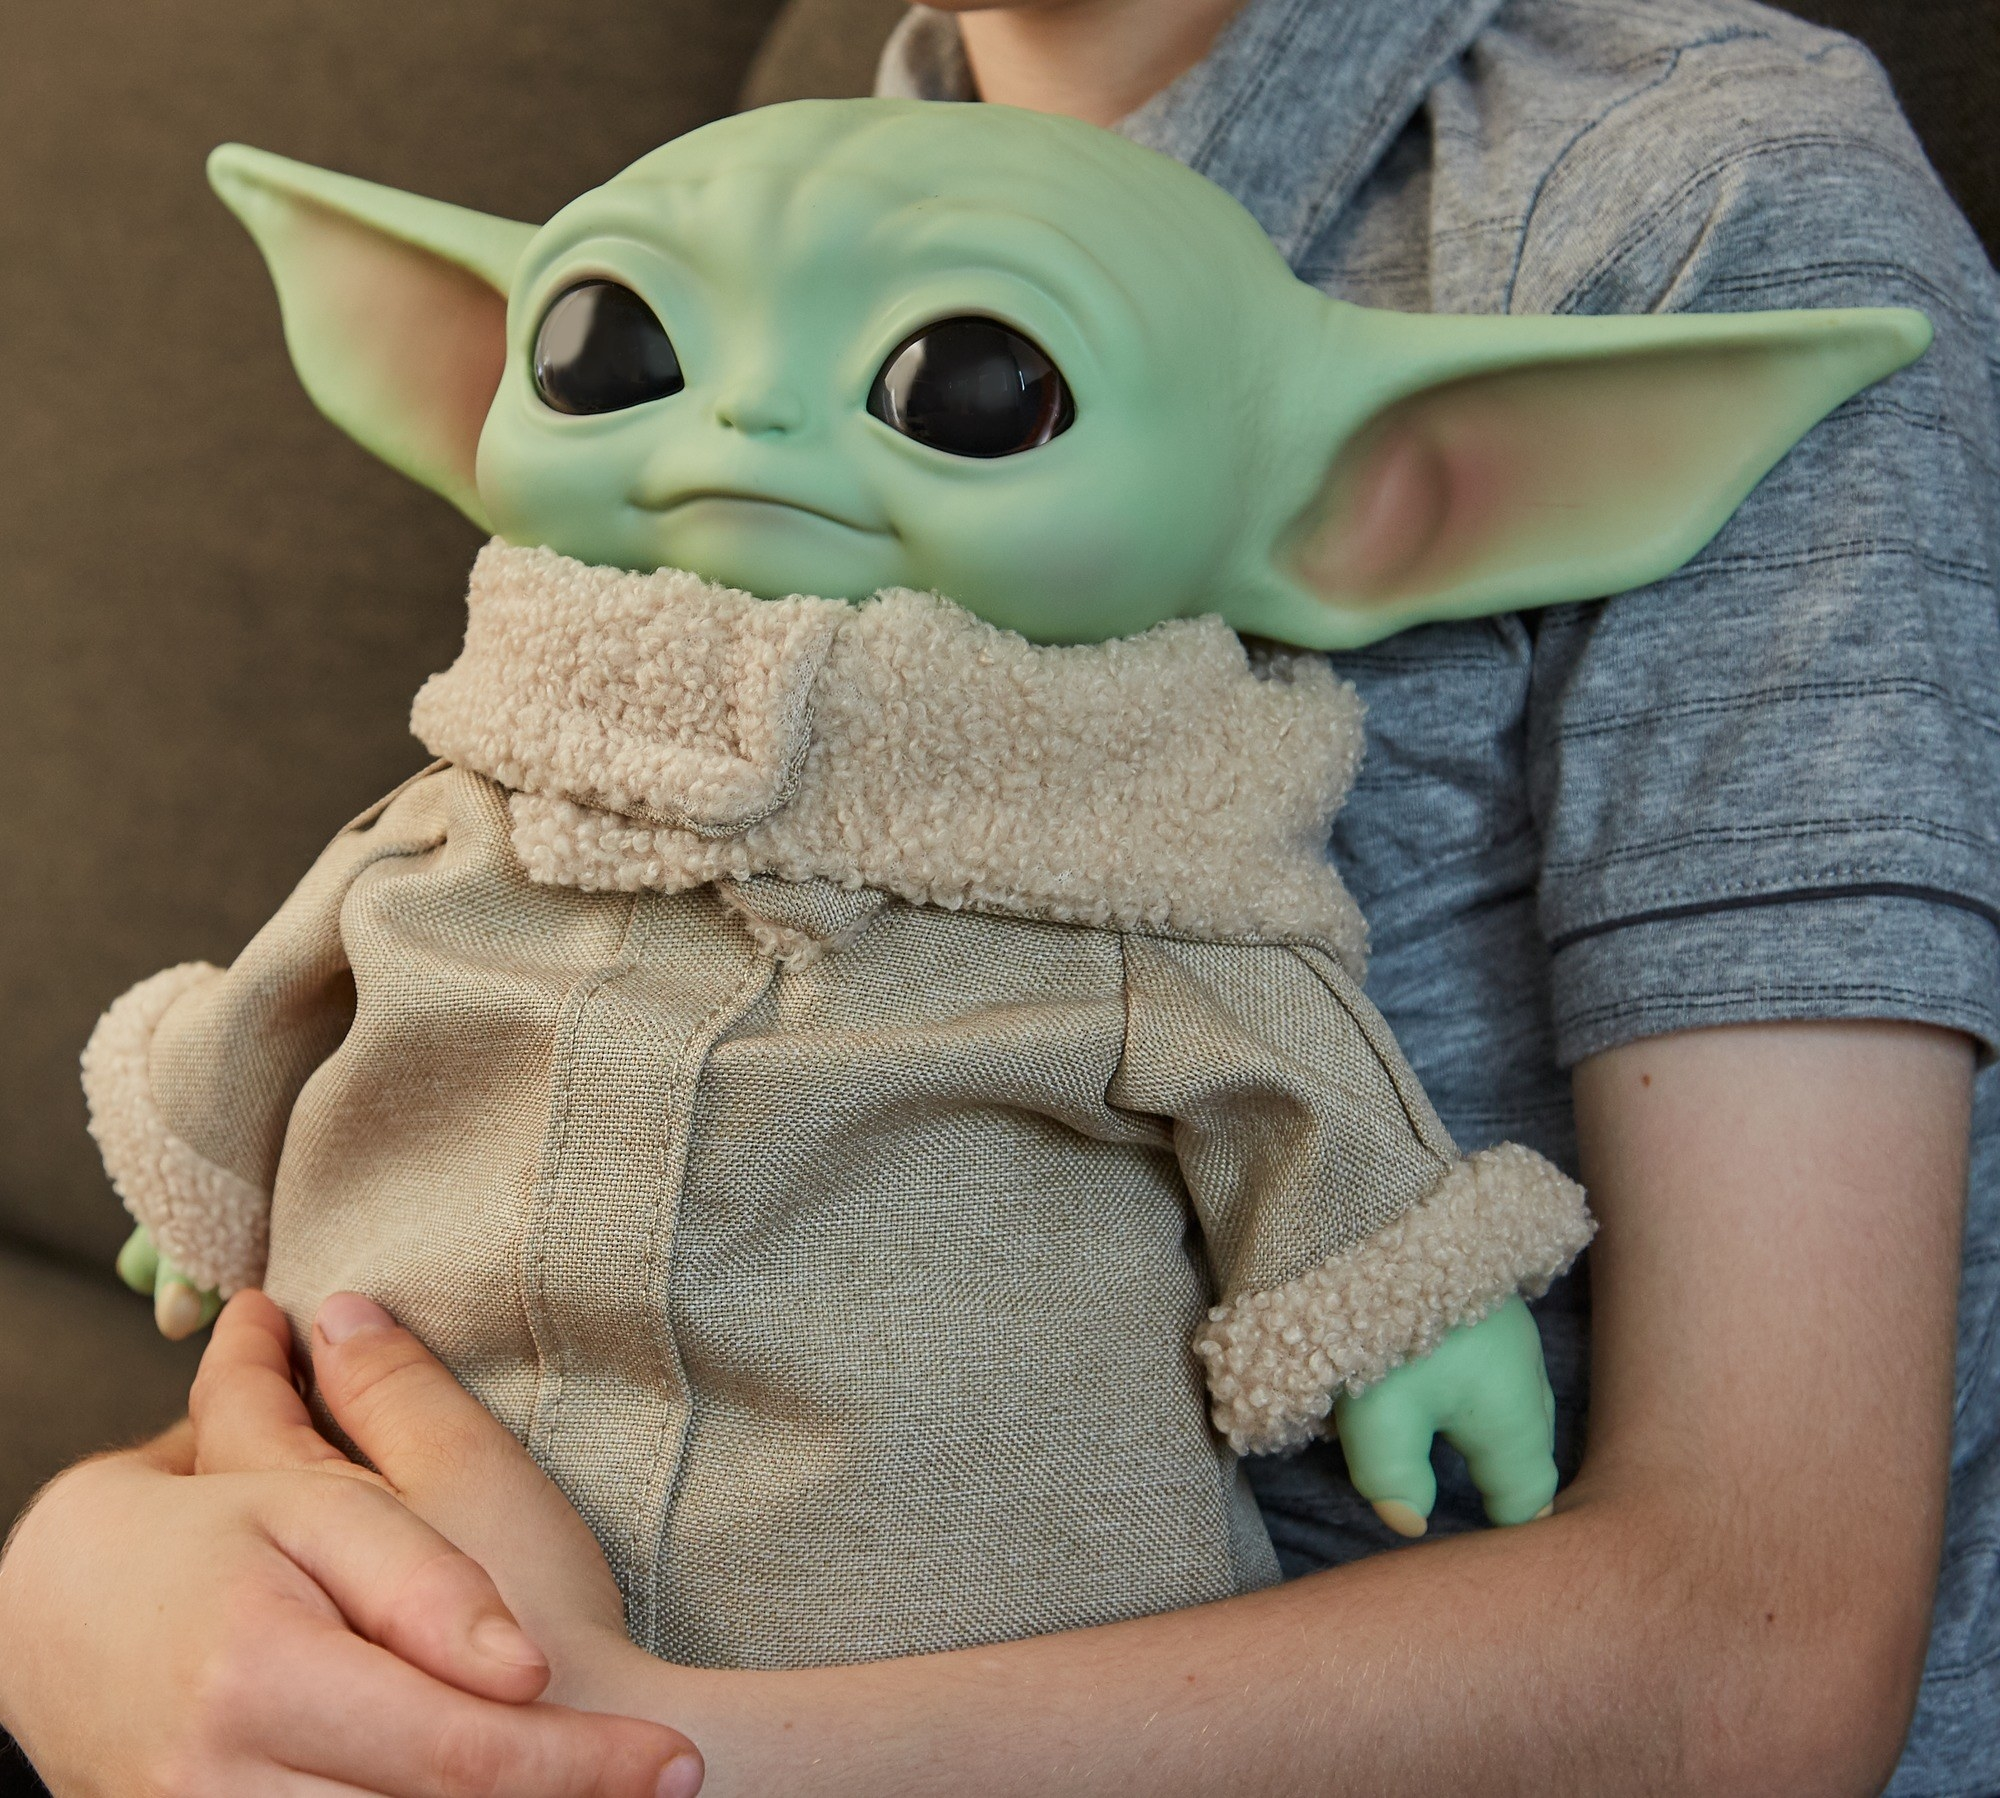 child holding a baby yoda plush toy in their arms